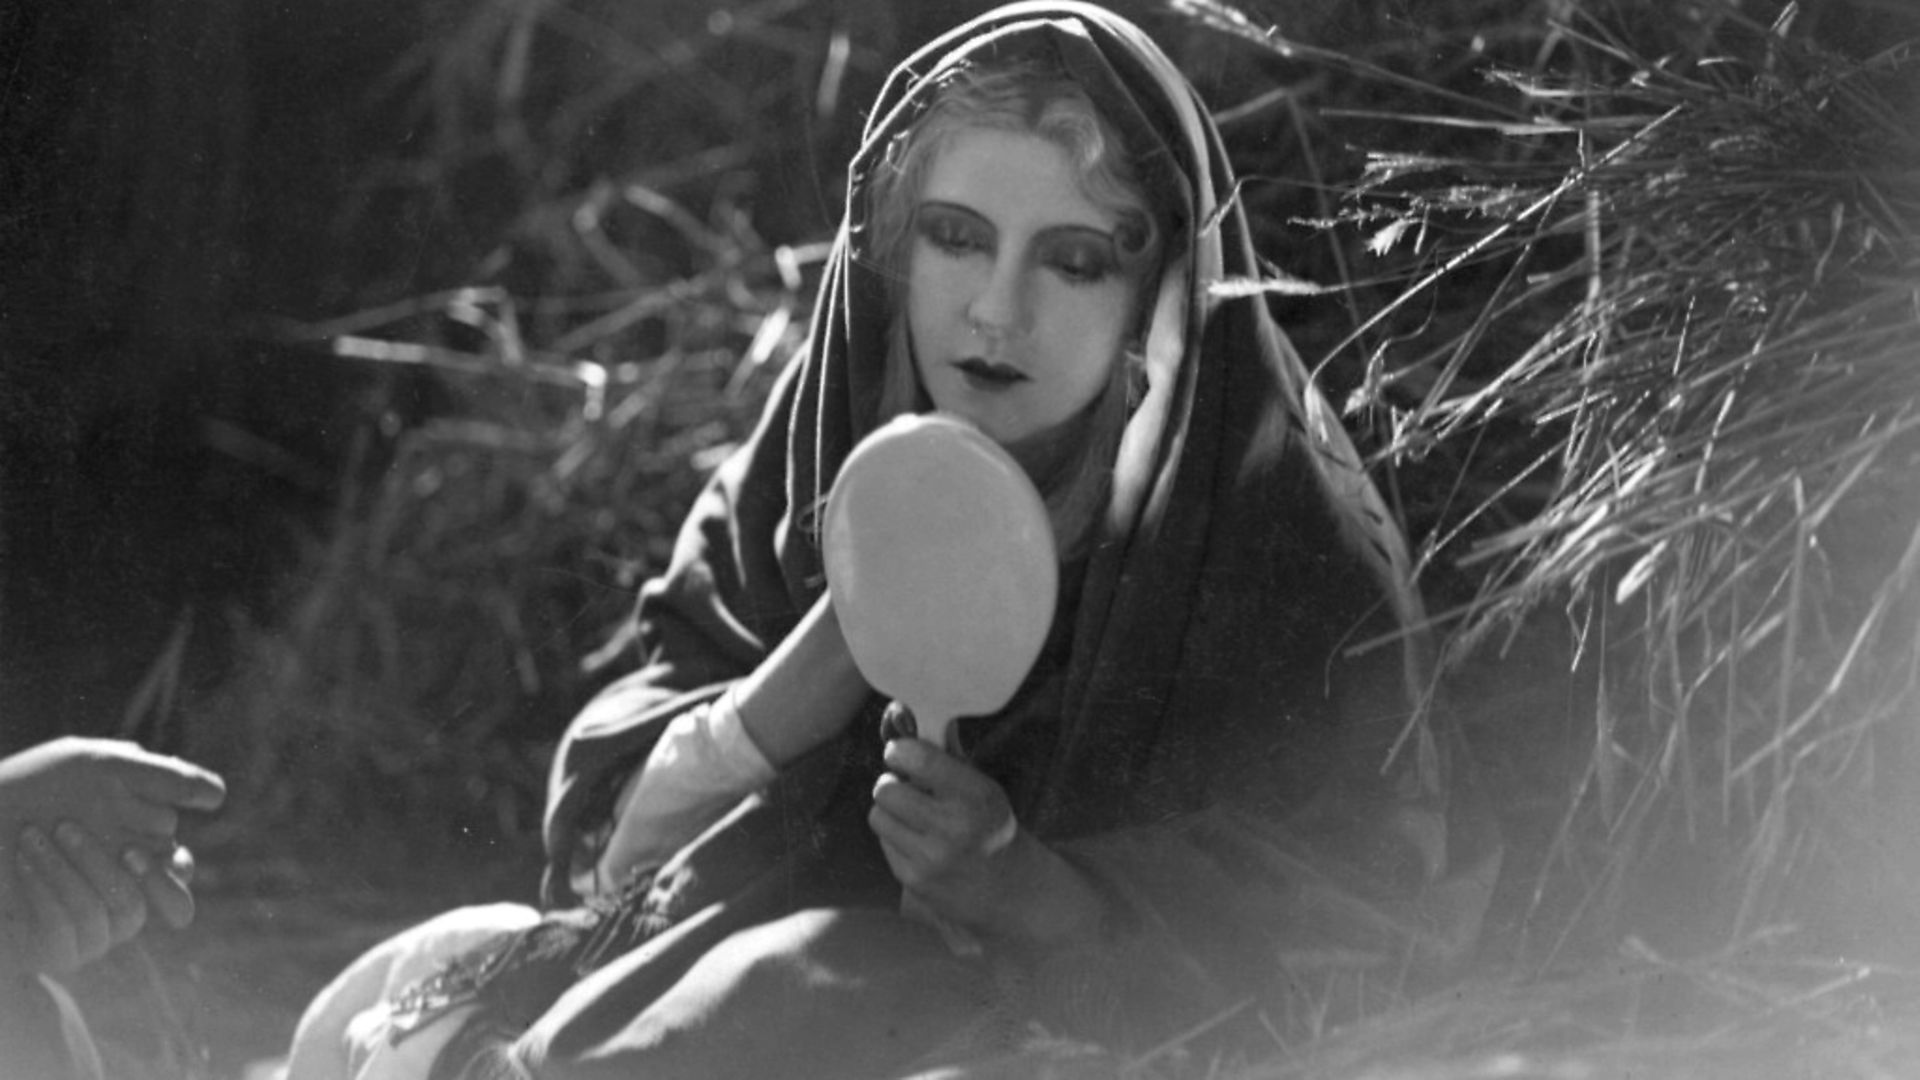 Brigitte Helm studies herself in the German silent film 'The Burning Mill'.  (Photo by Hulton Archive/Getty Images) - Credit: Getty Images